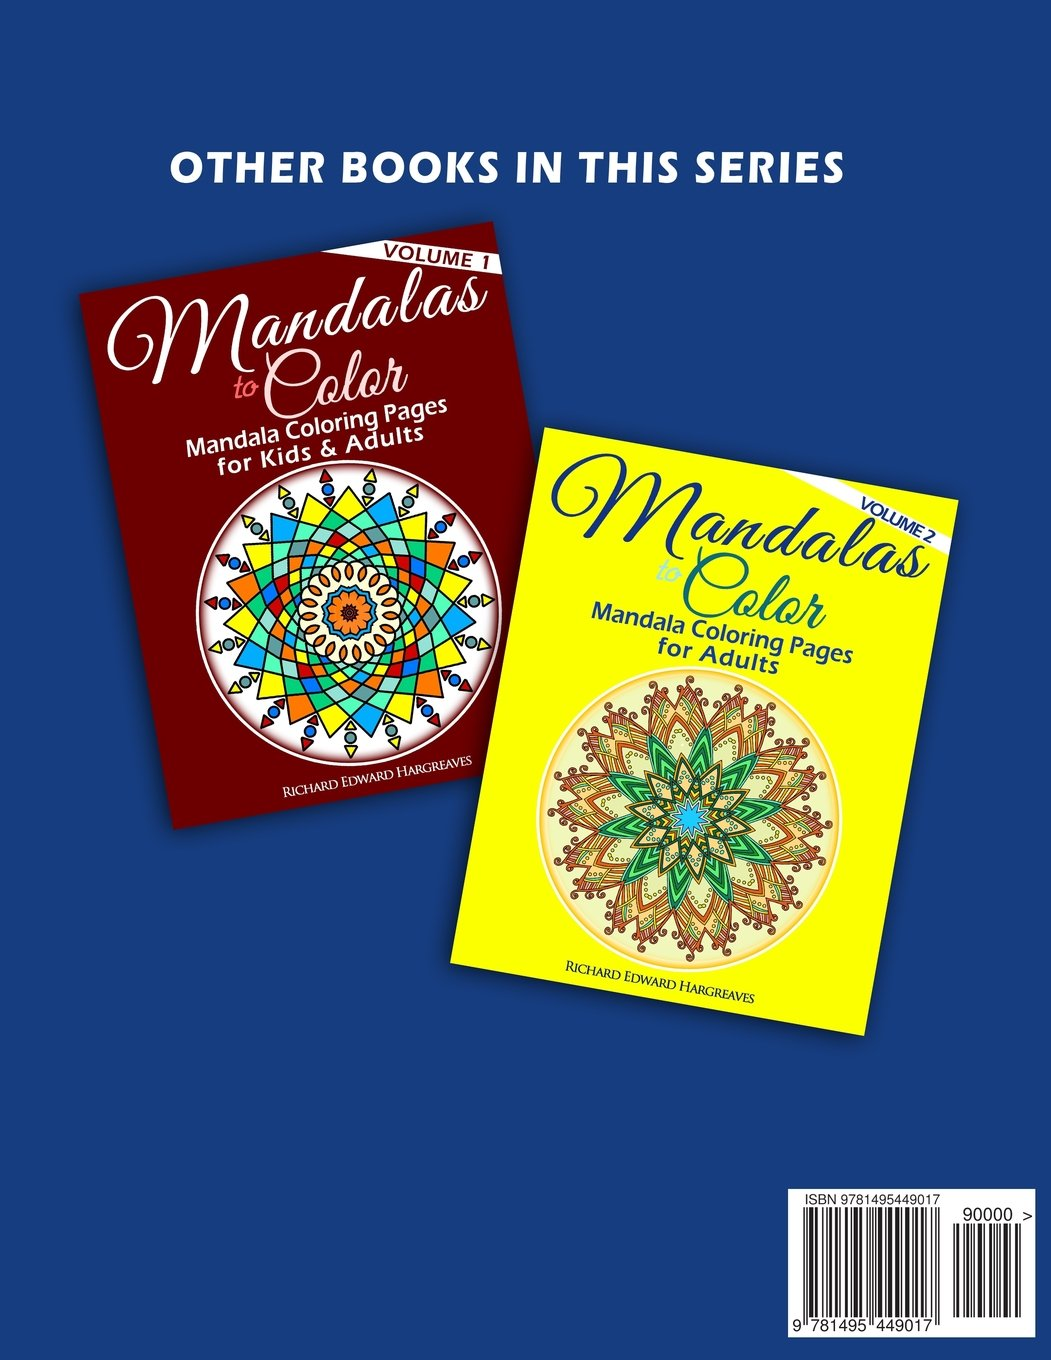 Mandala coloring pages amazon - Amazon Com Mandalas To Color Intricate Mandala Coloring Pages Advanced Designs Mandala Coloring Books Volume 3 9781495449017 Richard Edward